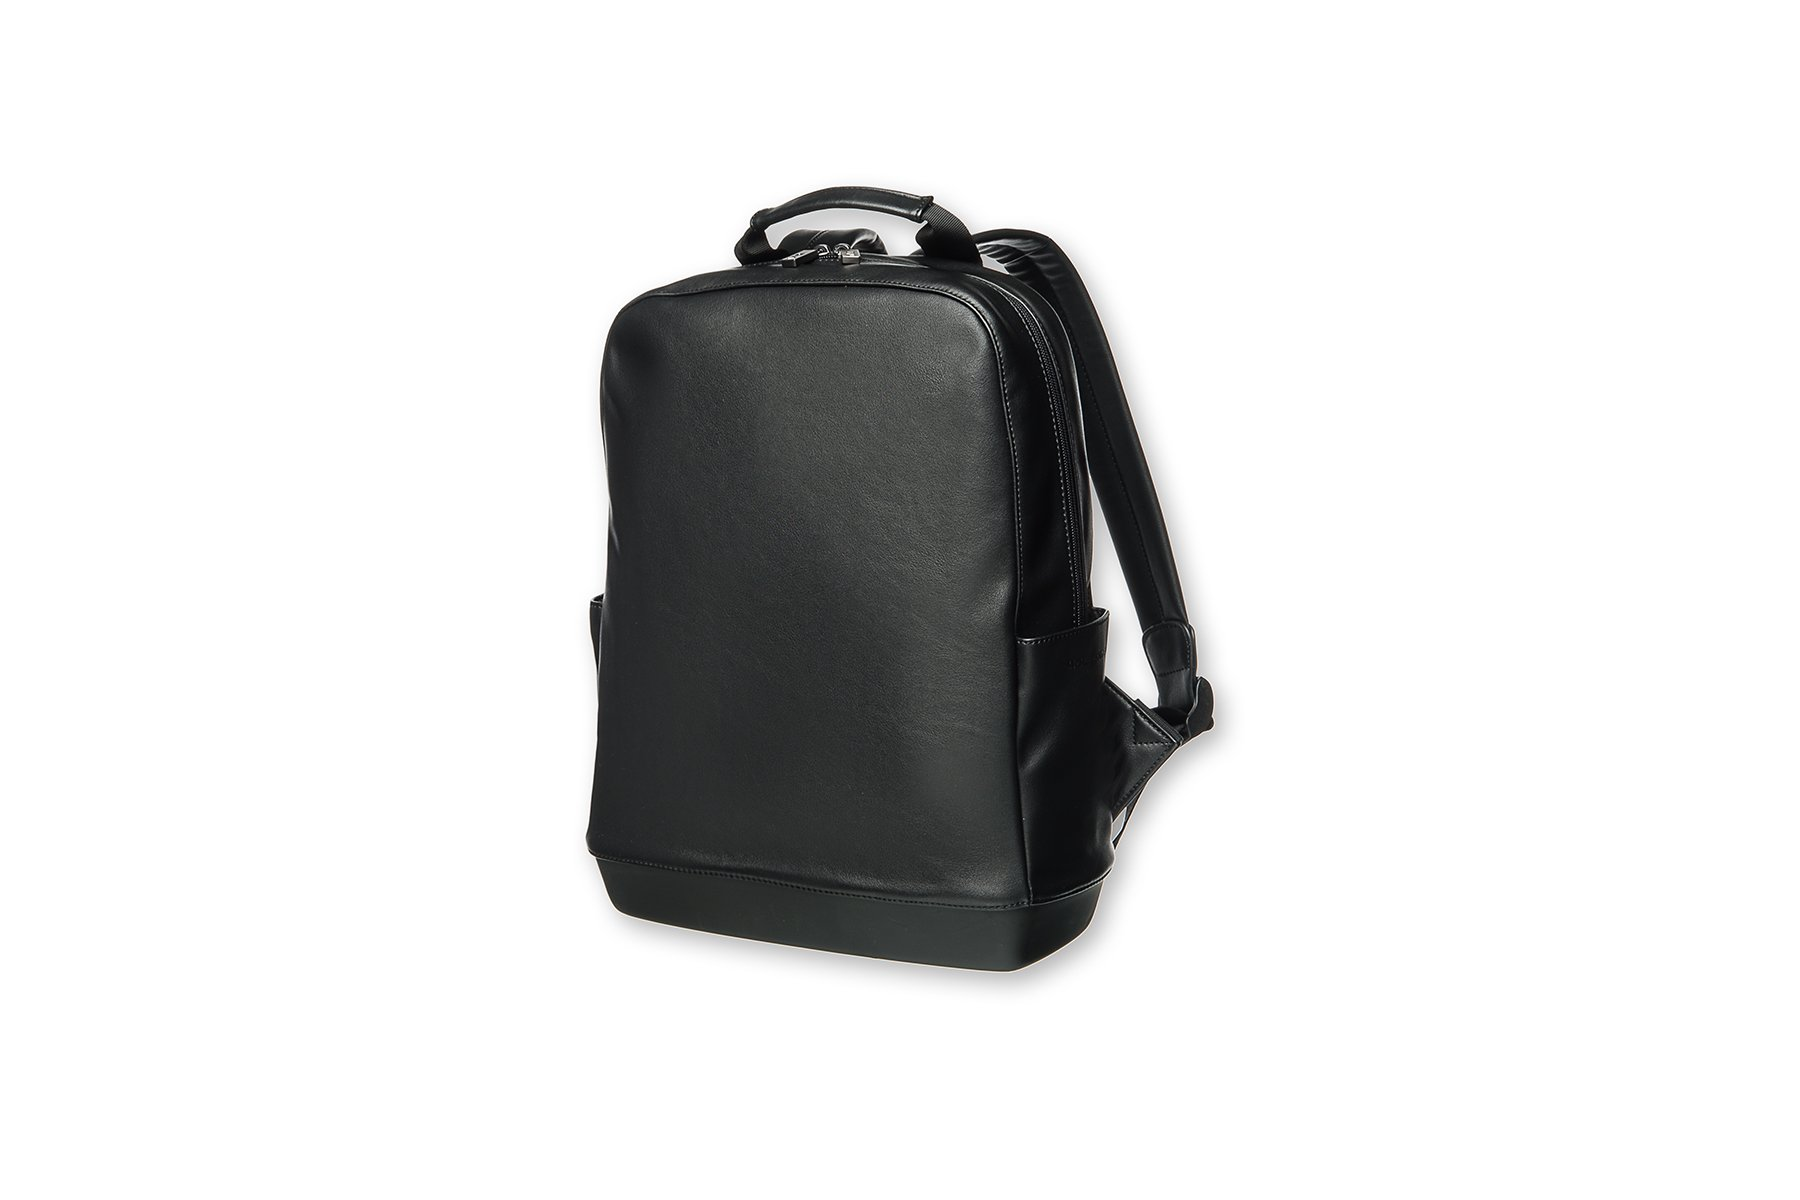 Moleskine Classic Backpack, Black, For Work, School, Travel, and Everyday Use, Space for Devices Tablet Laptop and Chargers, Notebook Planner or Organizer, Padded Adjustable Straps, Secure Zipper